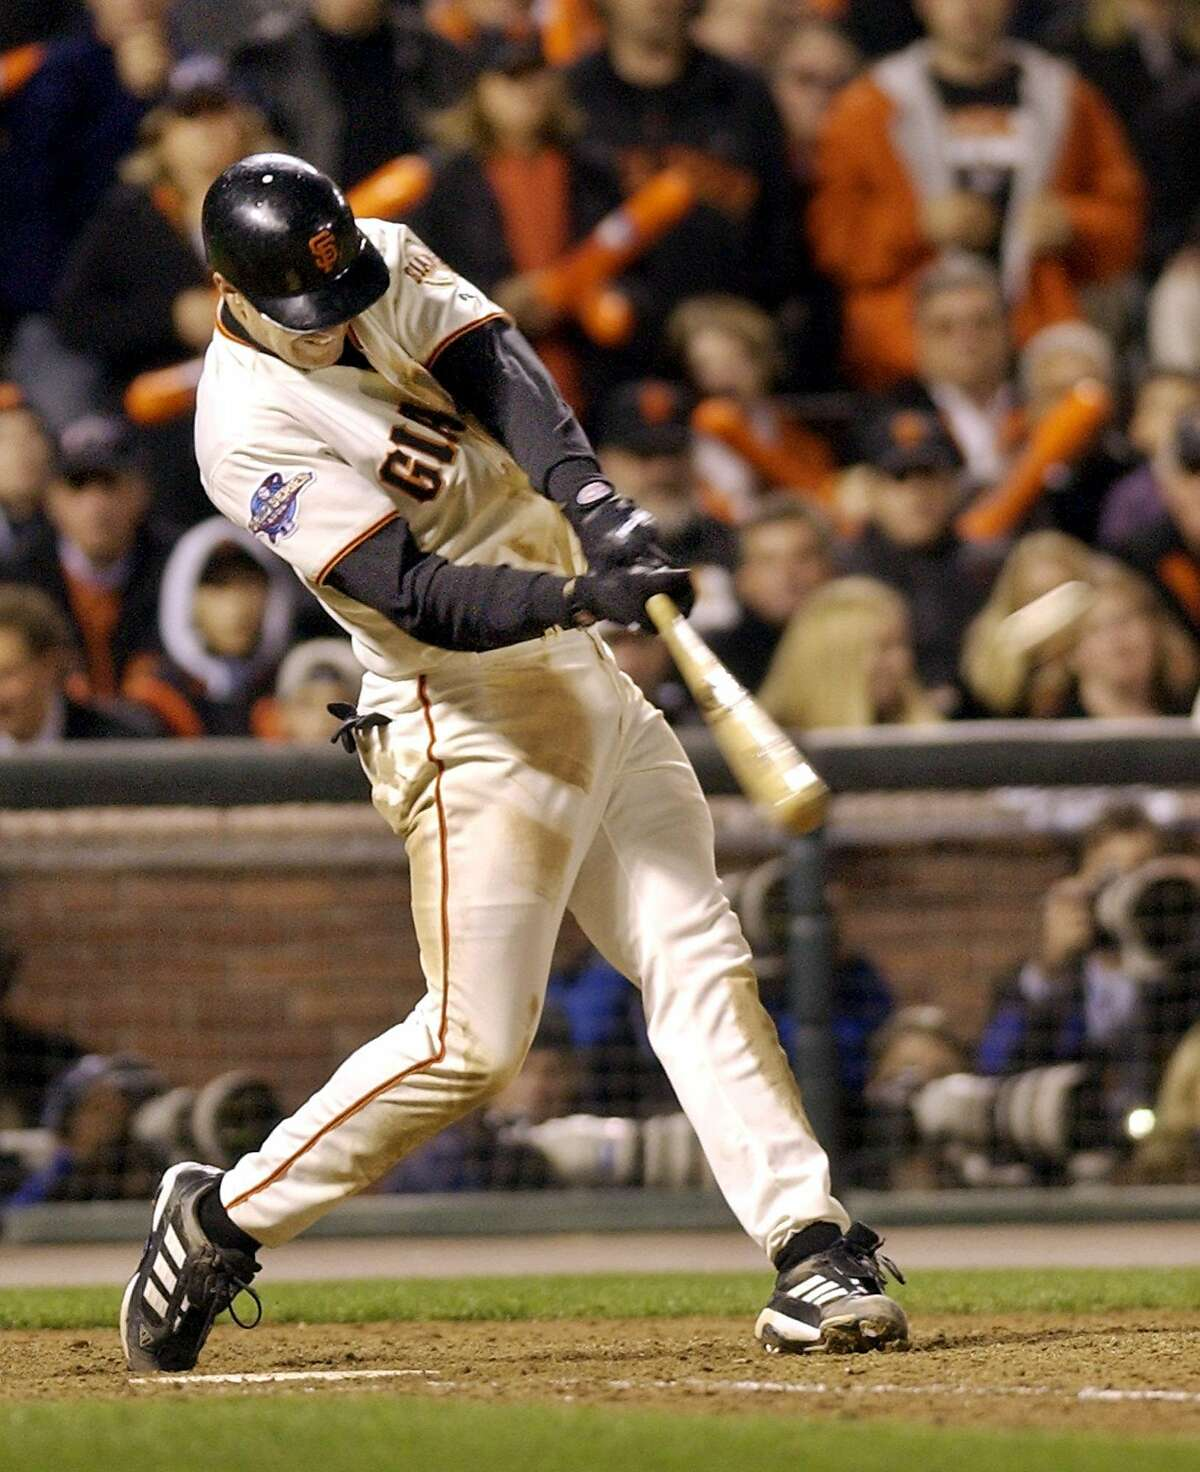 The San Francisco Giants' Jeff Kent connects for a two-run home run against the Anaheim Angels in the 6th inning of Game 5 of the World Series in San Francisco, Thursday, Oct. 24, 2002. (AP Photo/Kevork Djansezian)